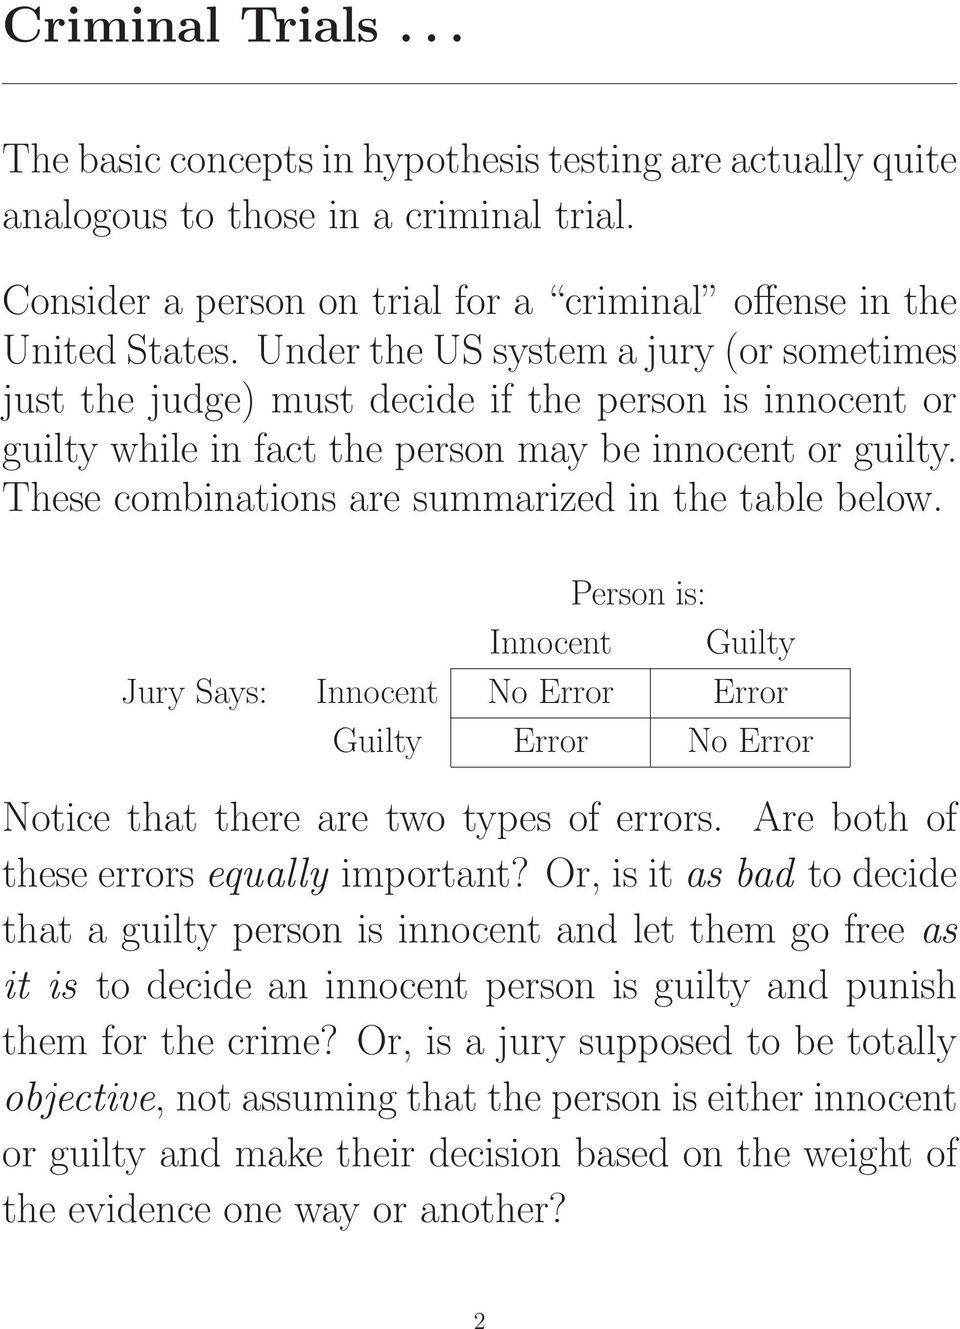 These combinations are summarized in the table below. Person is: Innocent Guilty Jury Says: Innocent No Error Error Guilty Error No Error Notice that there are two types of errors.